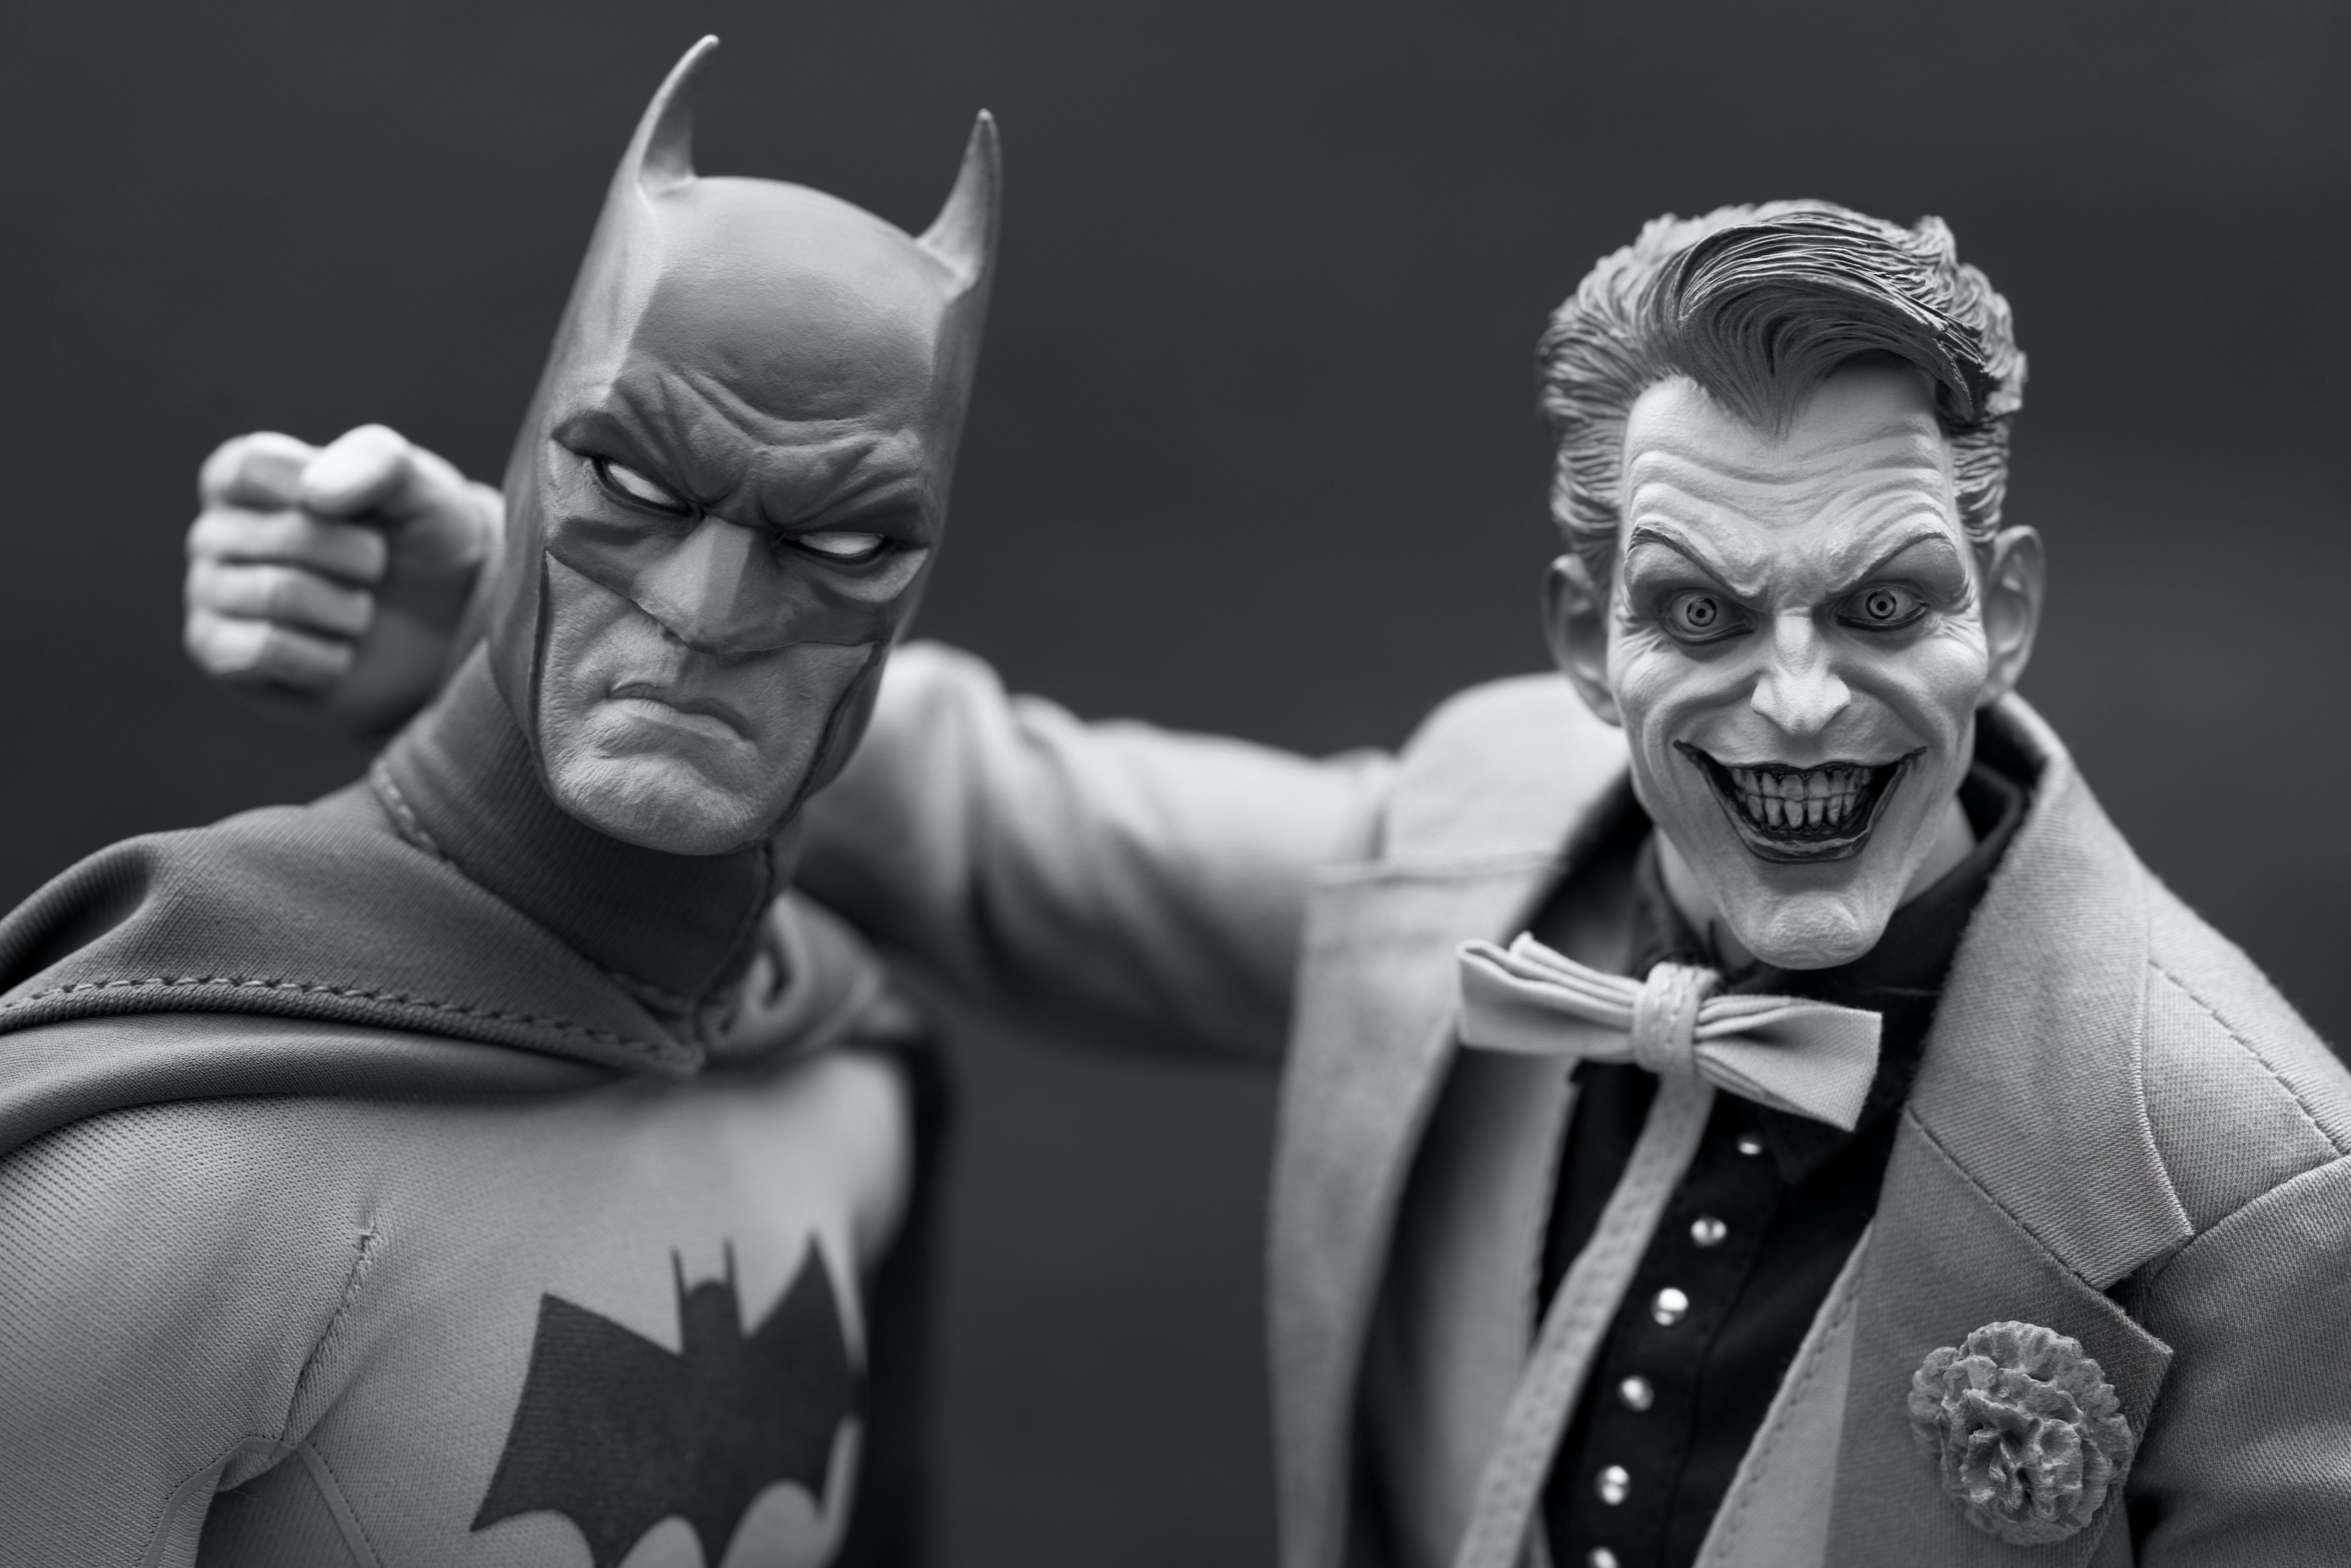 Two side-by-side figurines of Batman and the Joker. Photo courtesy of Patrick Collins on Unsplash.